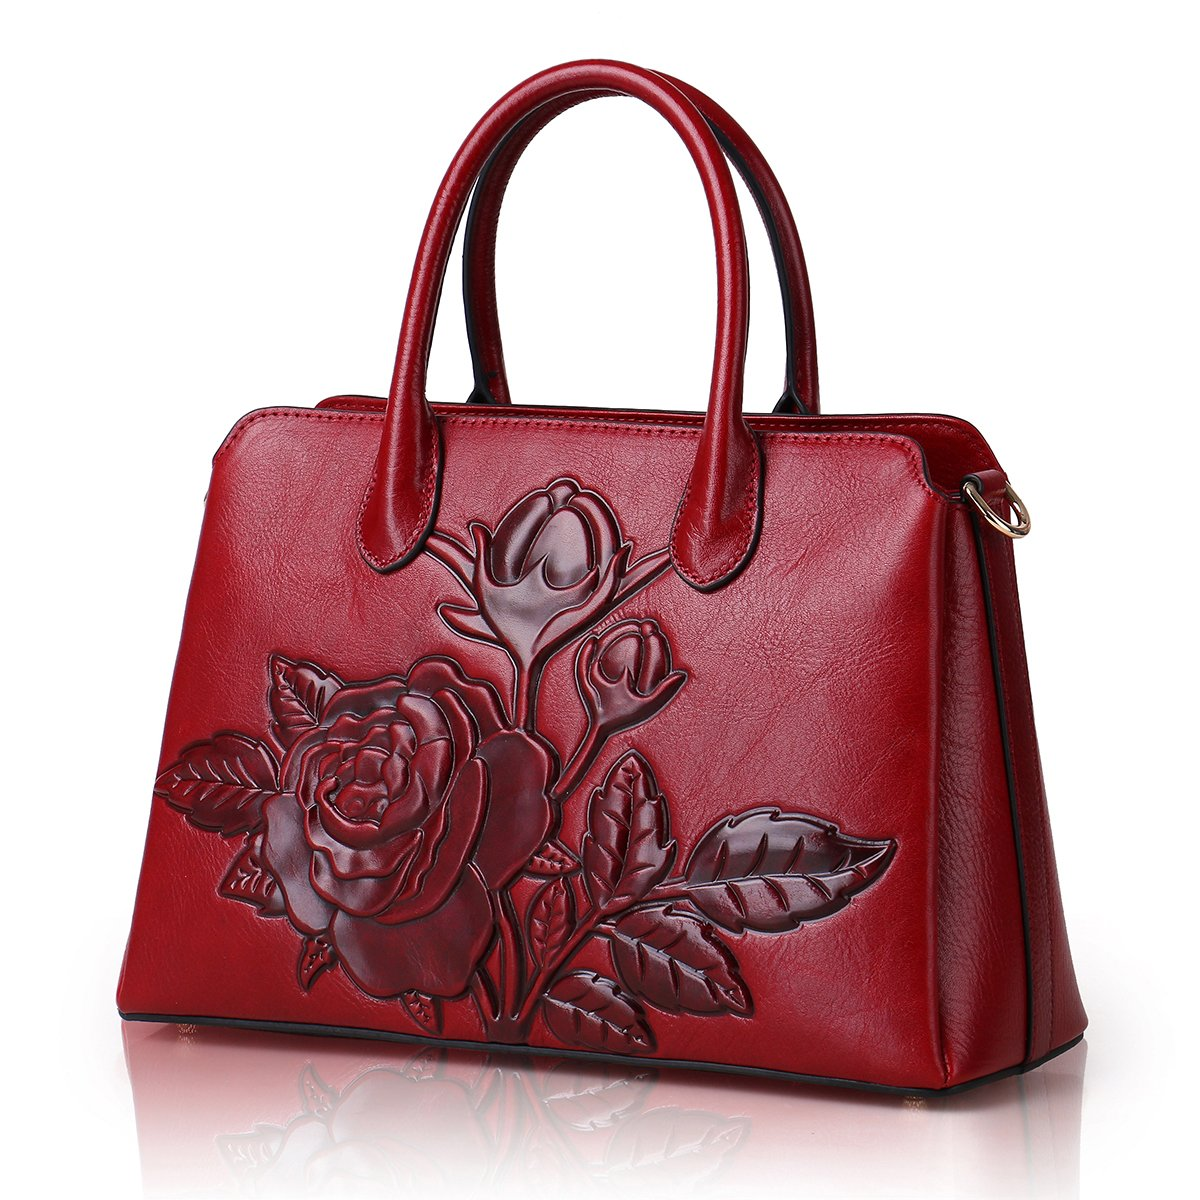 APHISON Designer Unique Embossed Floral Cowhide Leather Tote Style Ladies Top Handle Bags Handbags (Red)